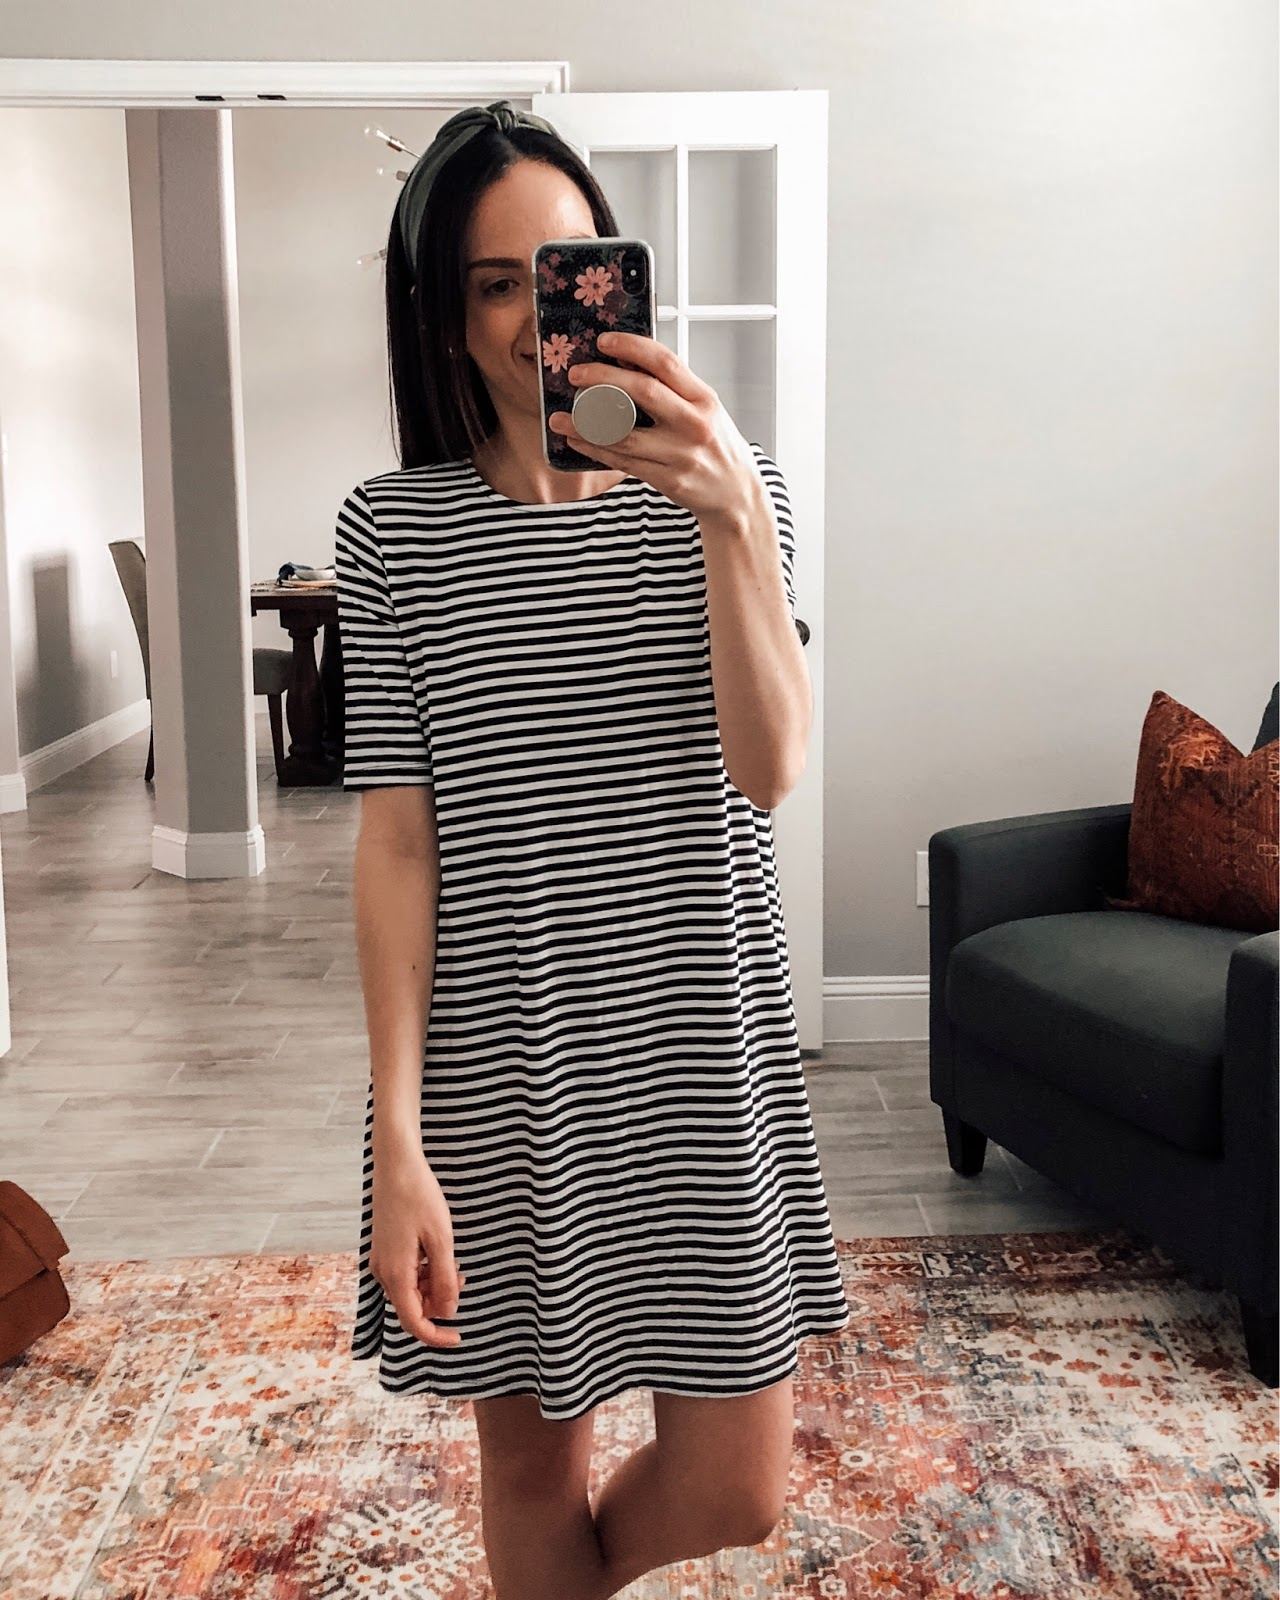 Styling a basic dress with hair tie and sandals